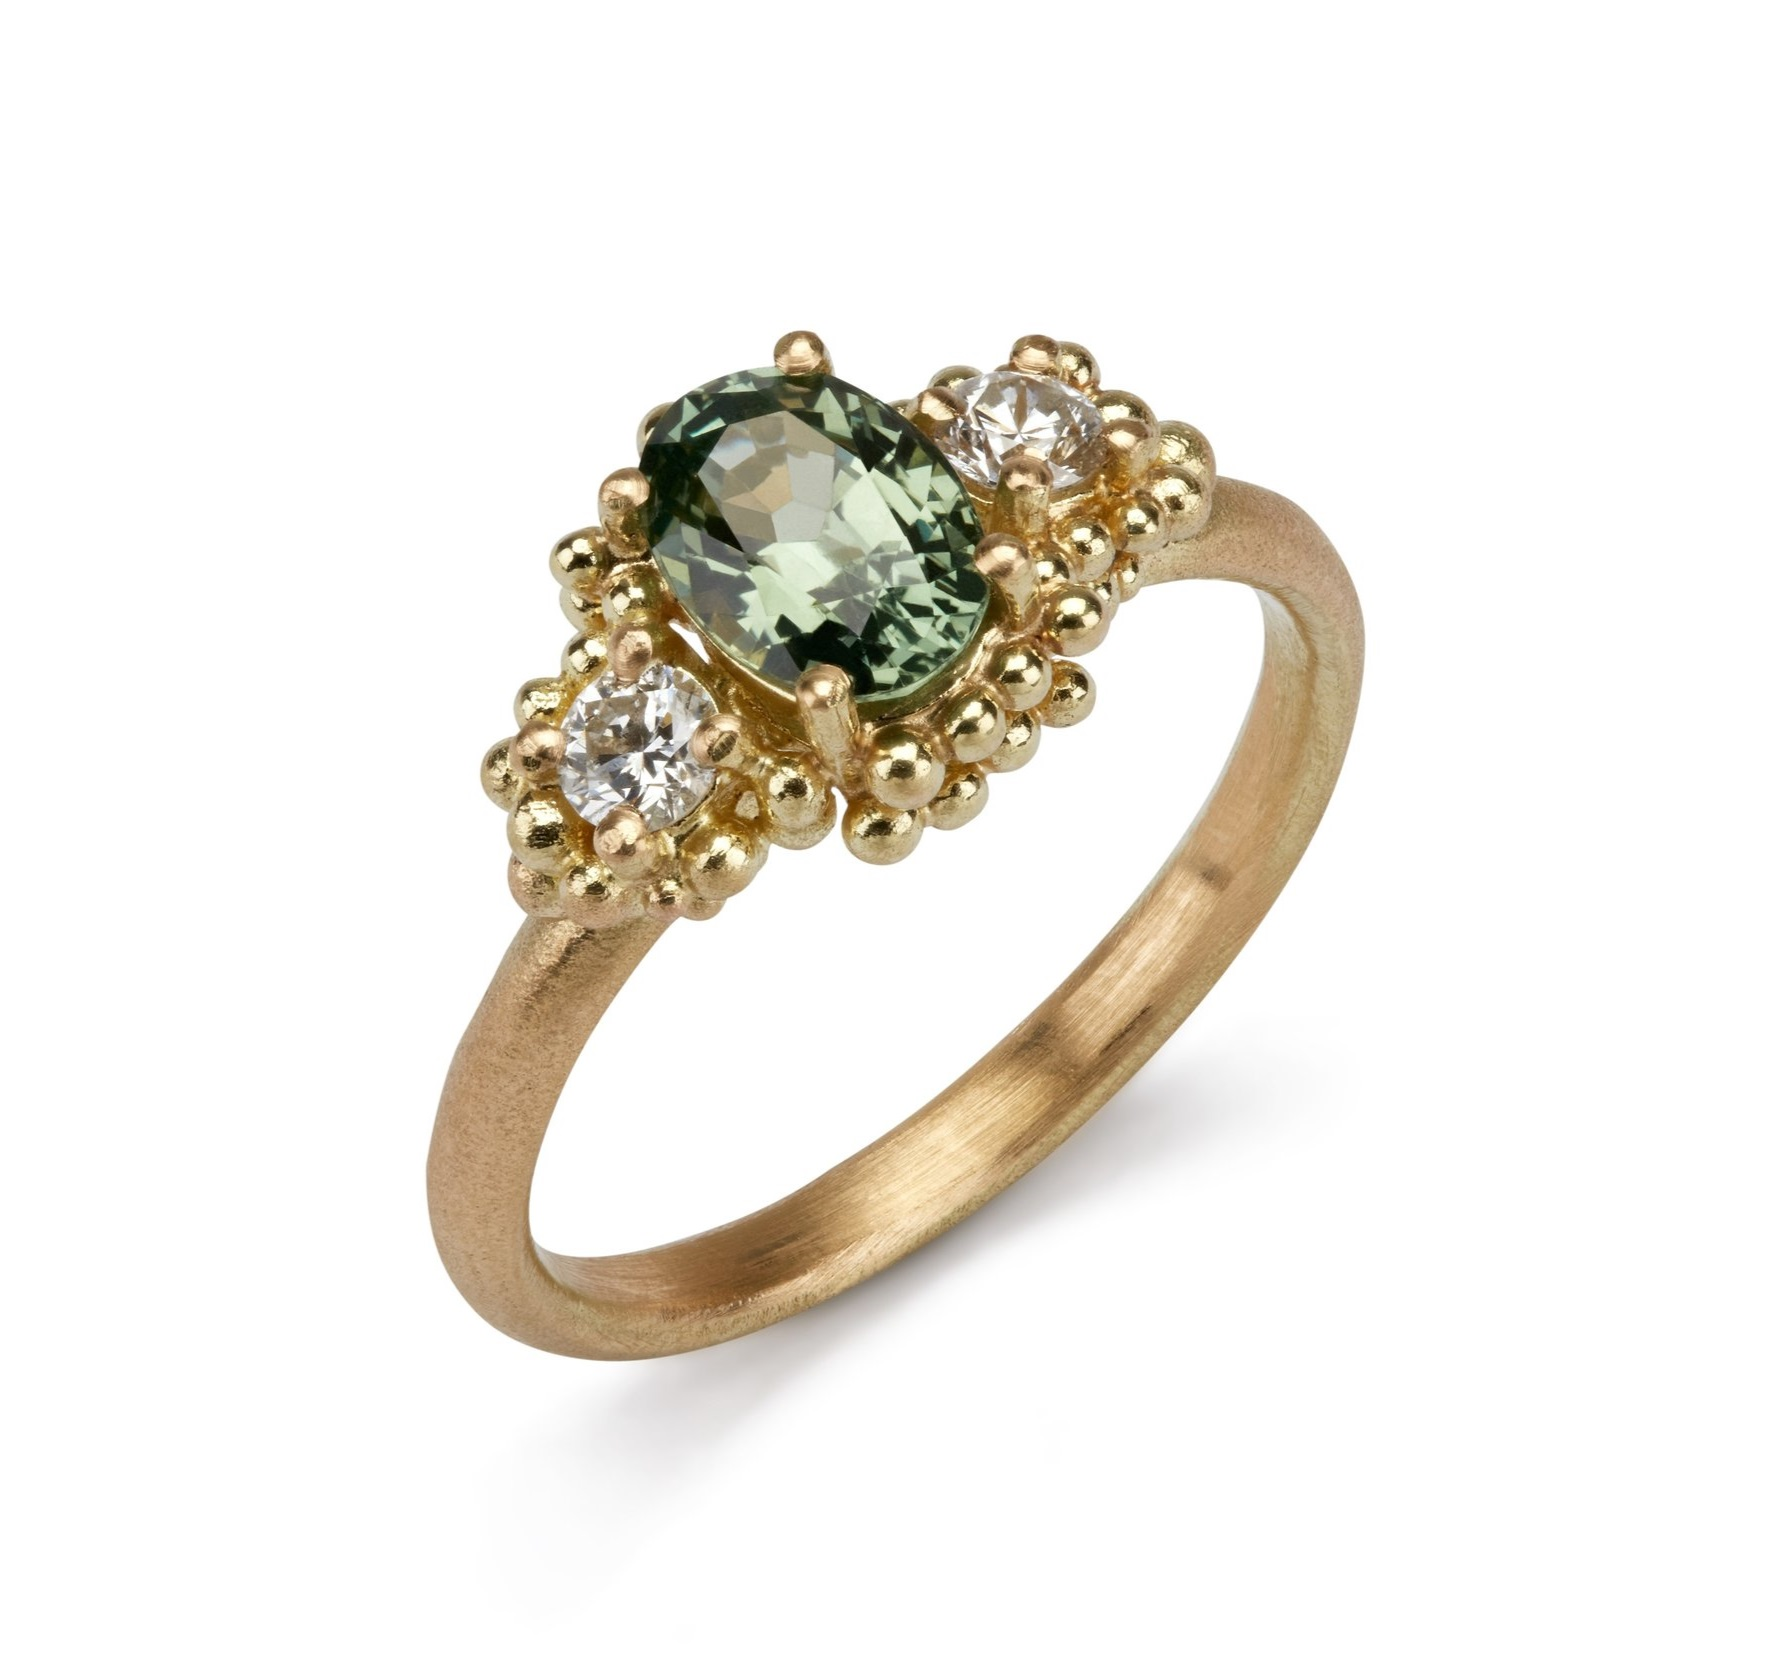 Ethical Gemstones - This luscious green sapphire and diamond ring by Hannah Bedford is waiting for you at Gill Wing. Featuring the granulated gold detail, the precious sapphire is a beautiful choice for those wishing for a little colour in their engagement ring.